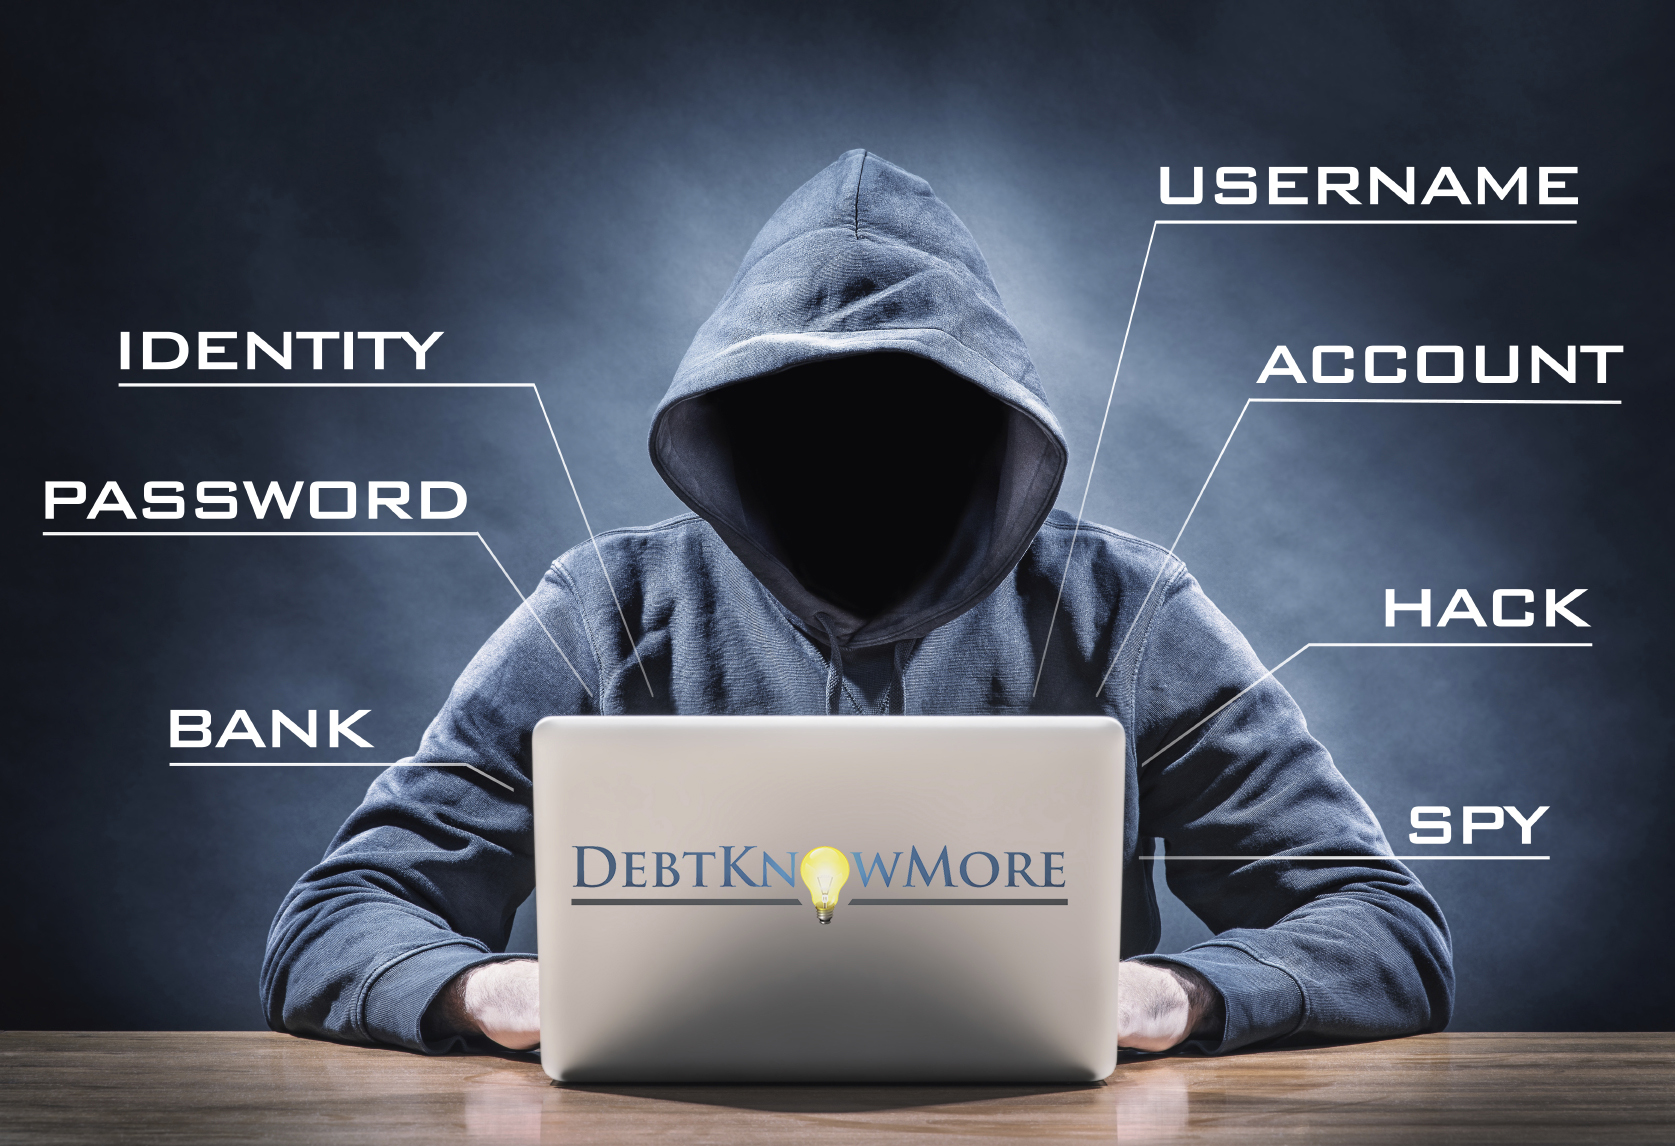 What Are Businesses Doing To Prevent Identity Theft?